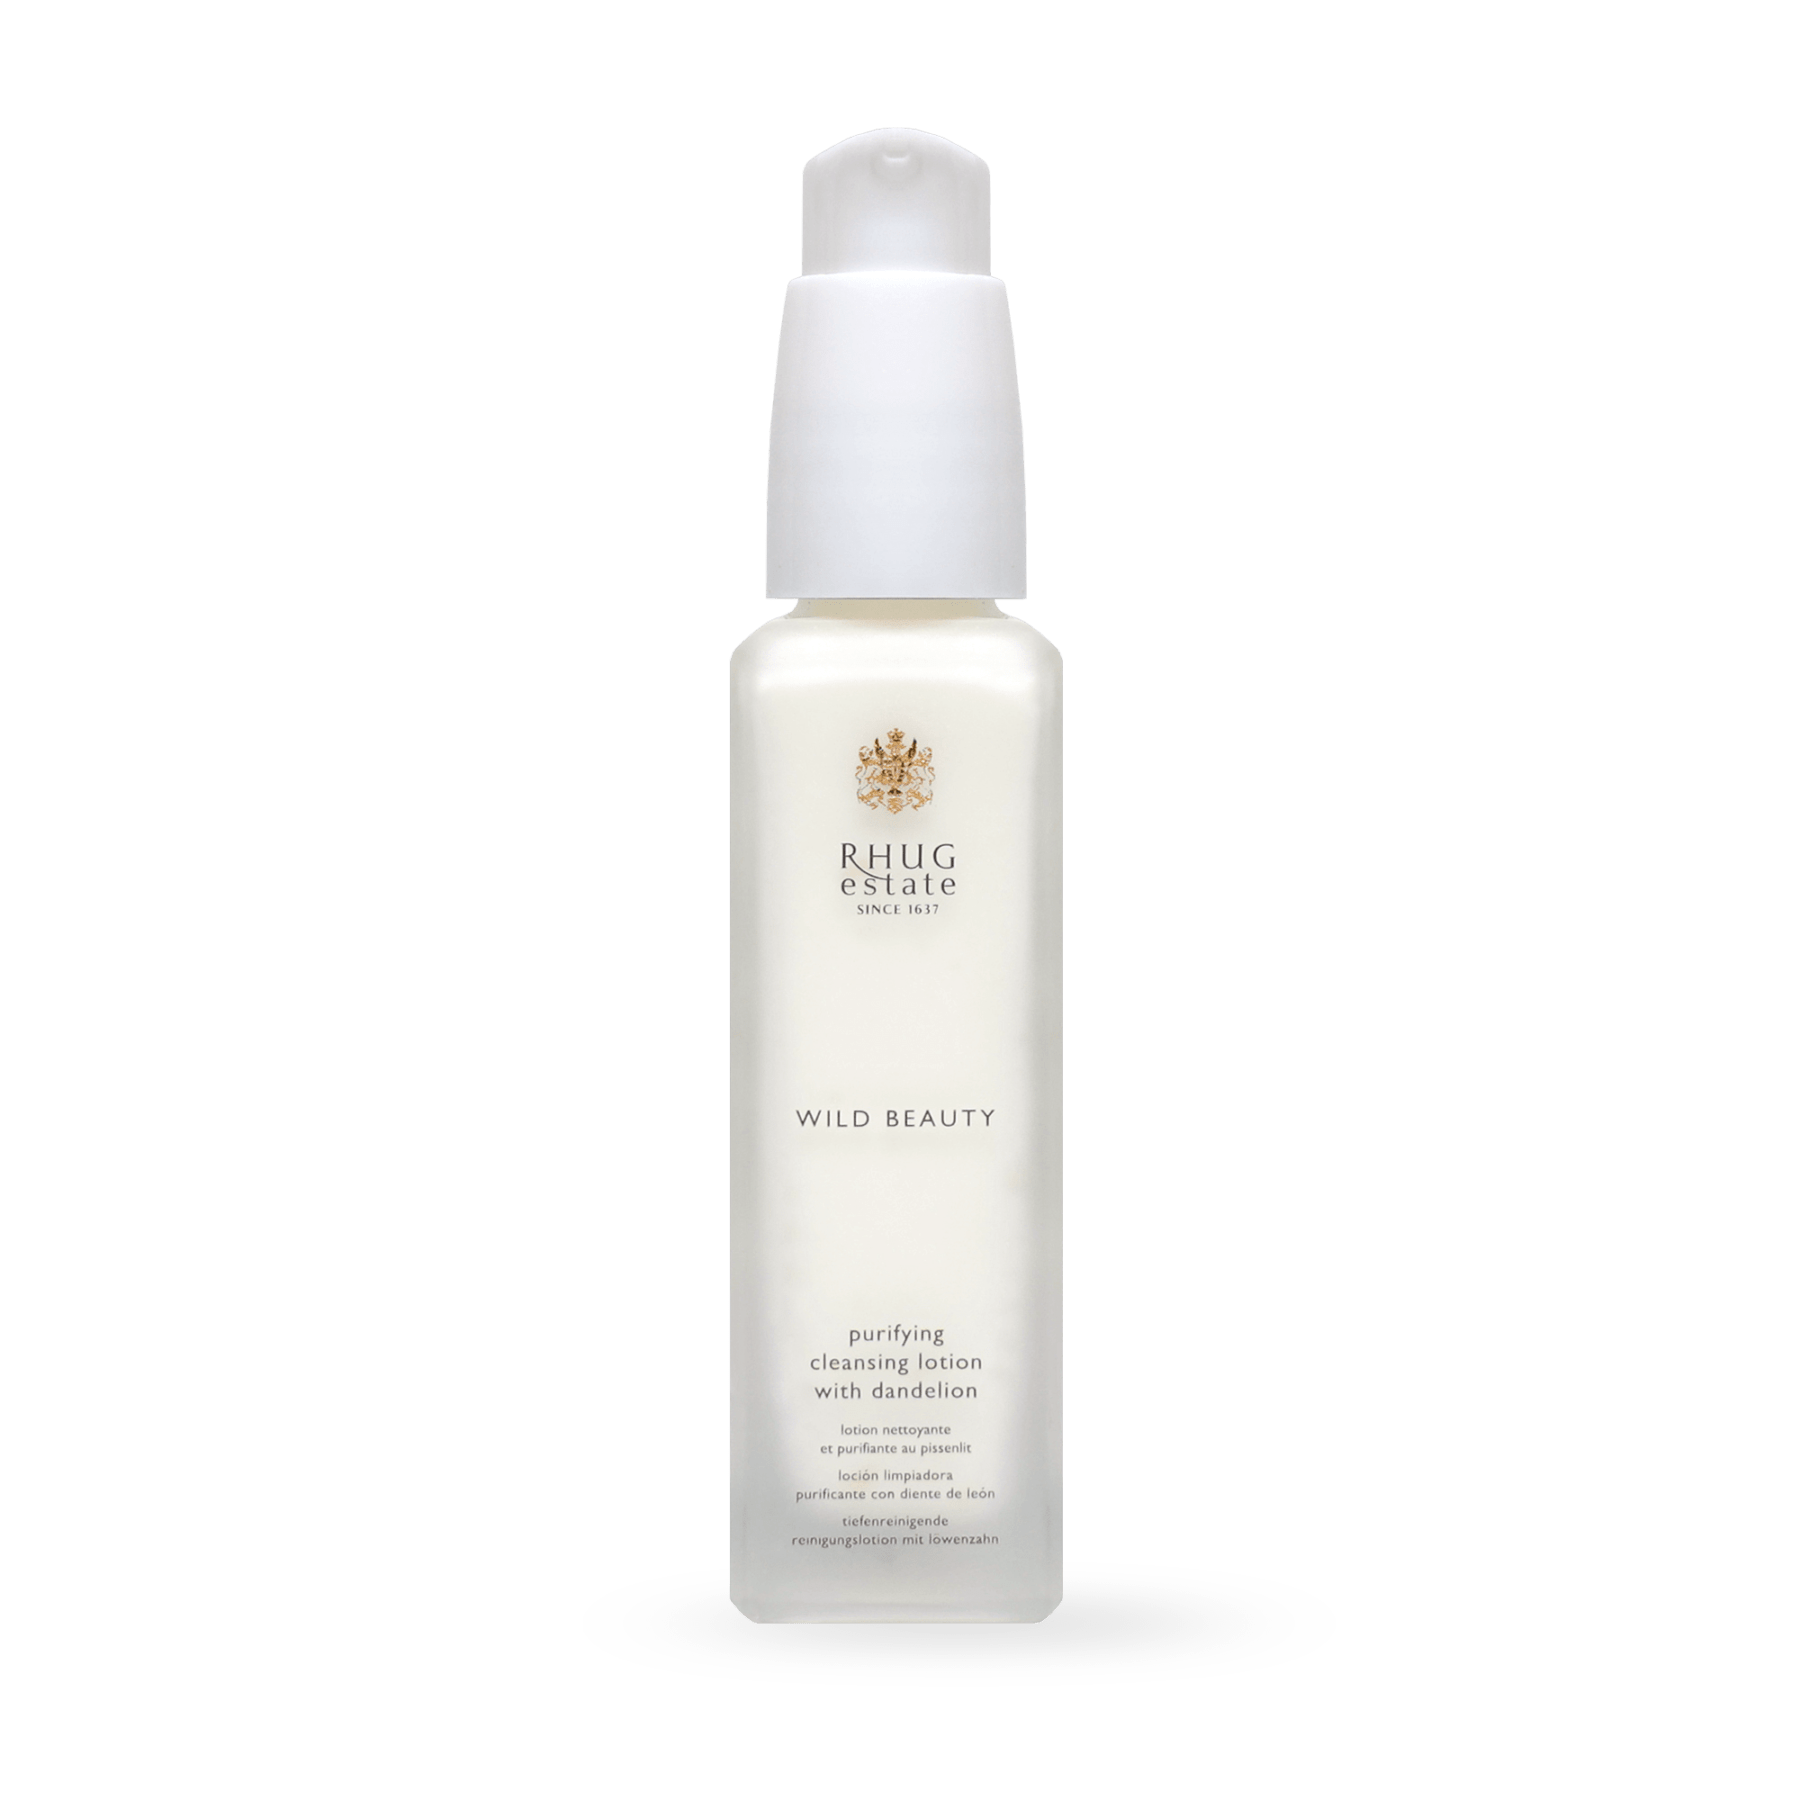 Purifying Cleansing Lotion with Dandelion Mini by Rhug Wild Beauty